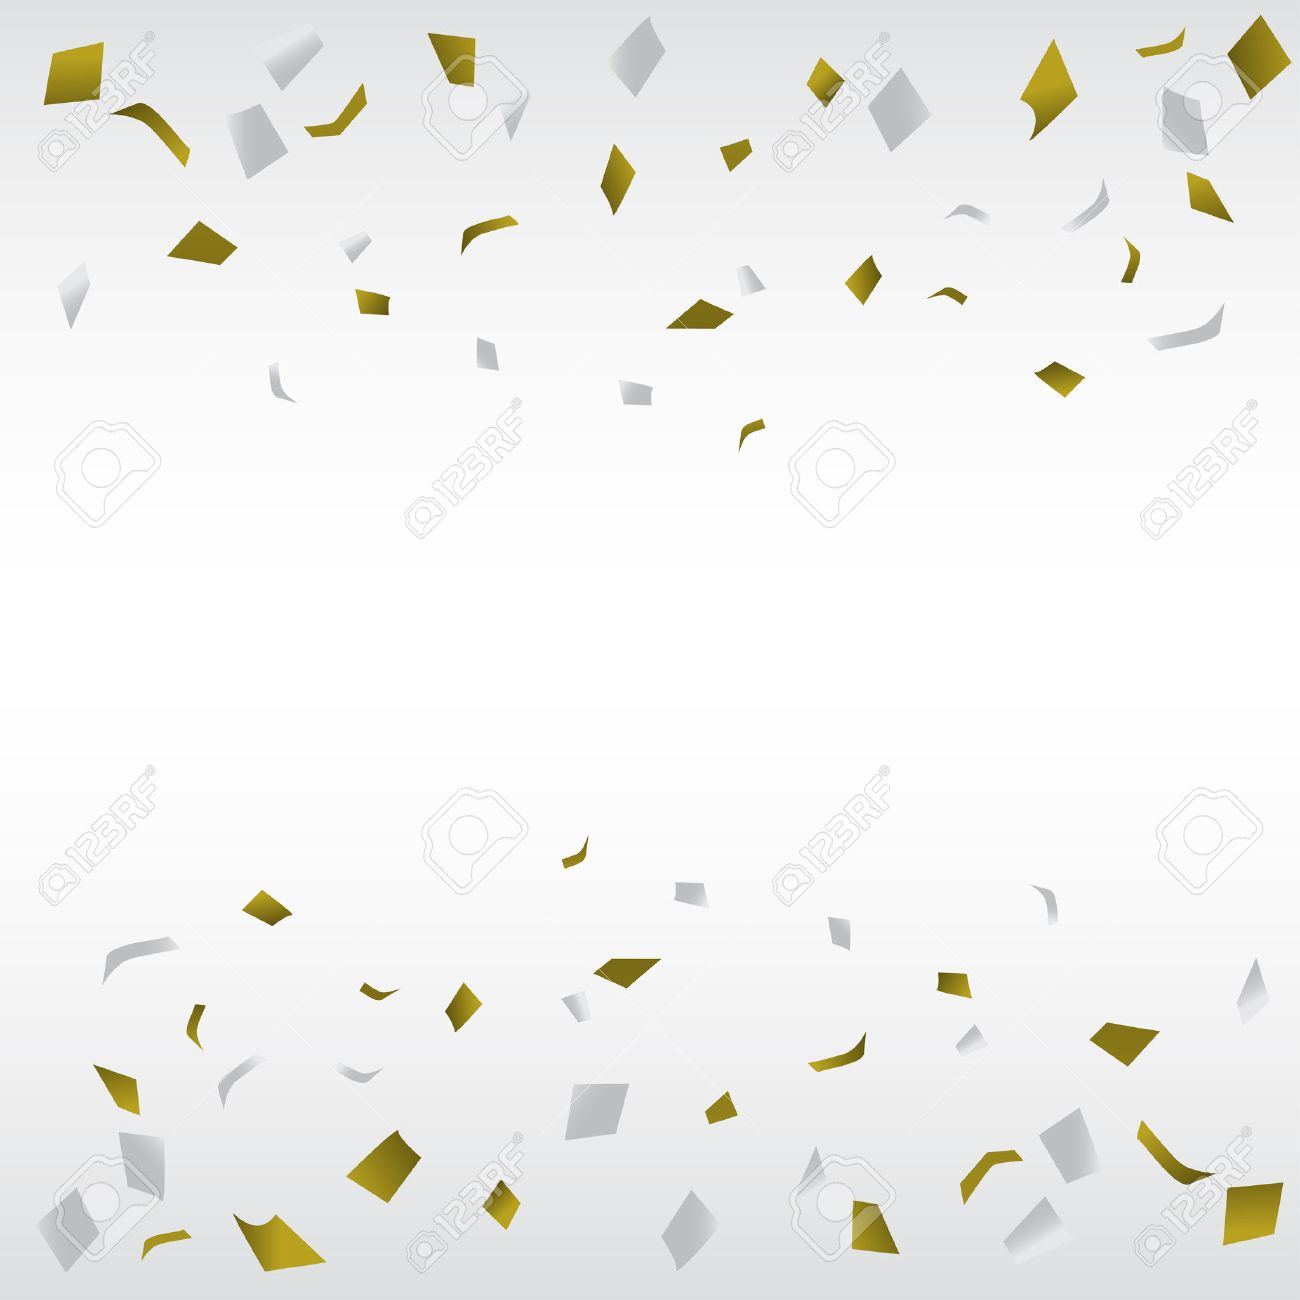 gold and silver confetti background, can be ues for celebration, new year, birthday, christmas greeting card. also design for web page, business banner, cover page. vector illustration - 47391022